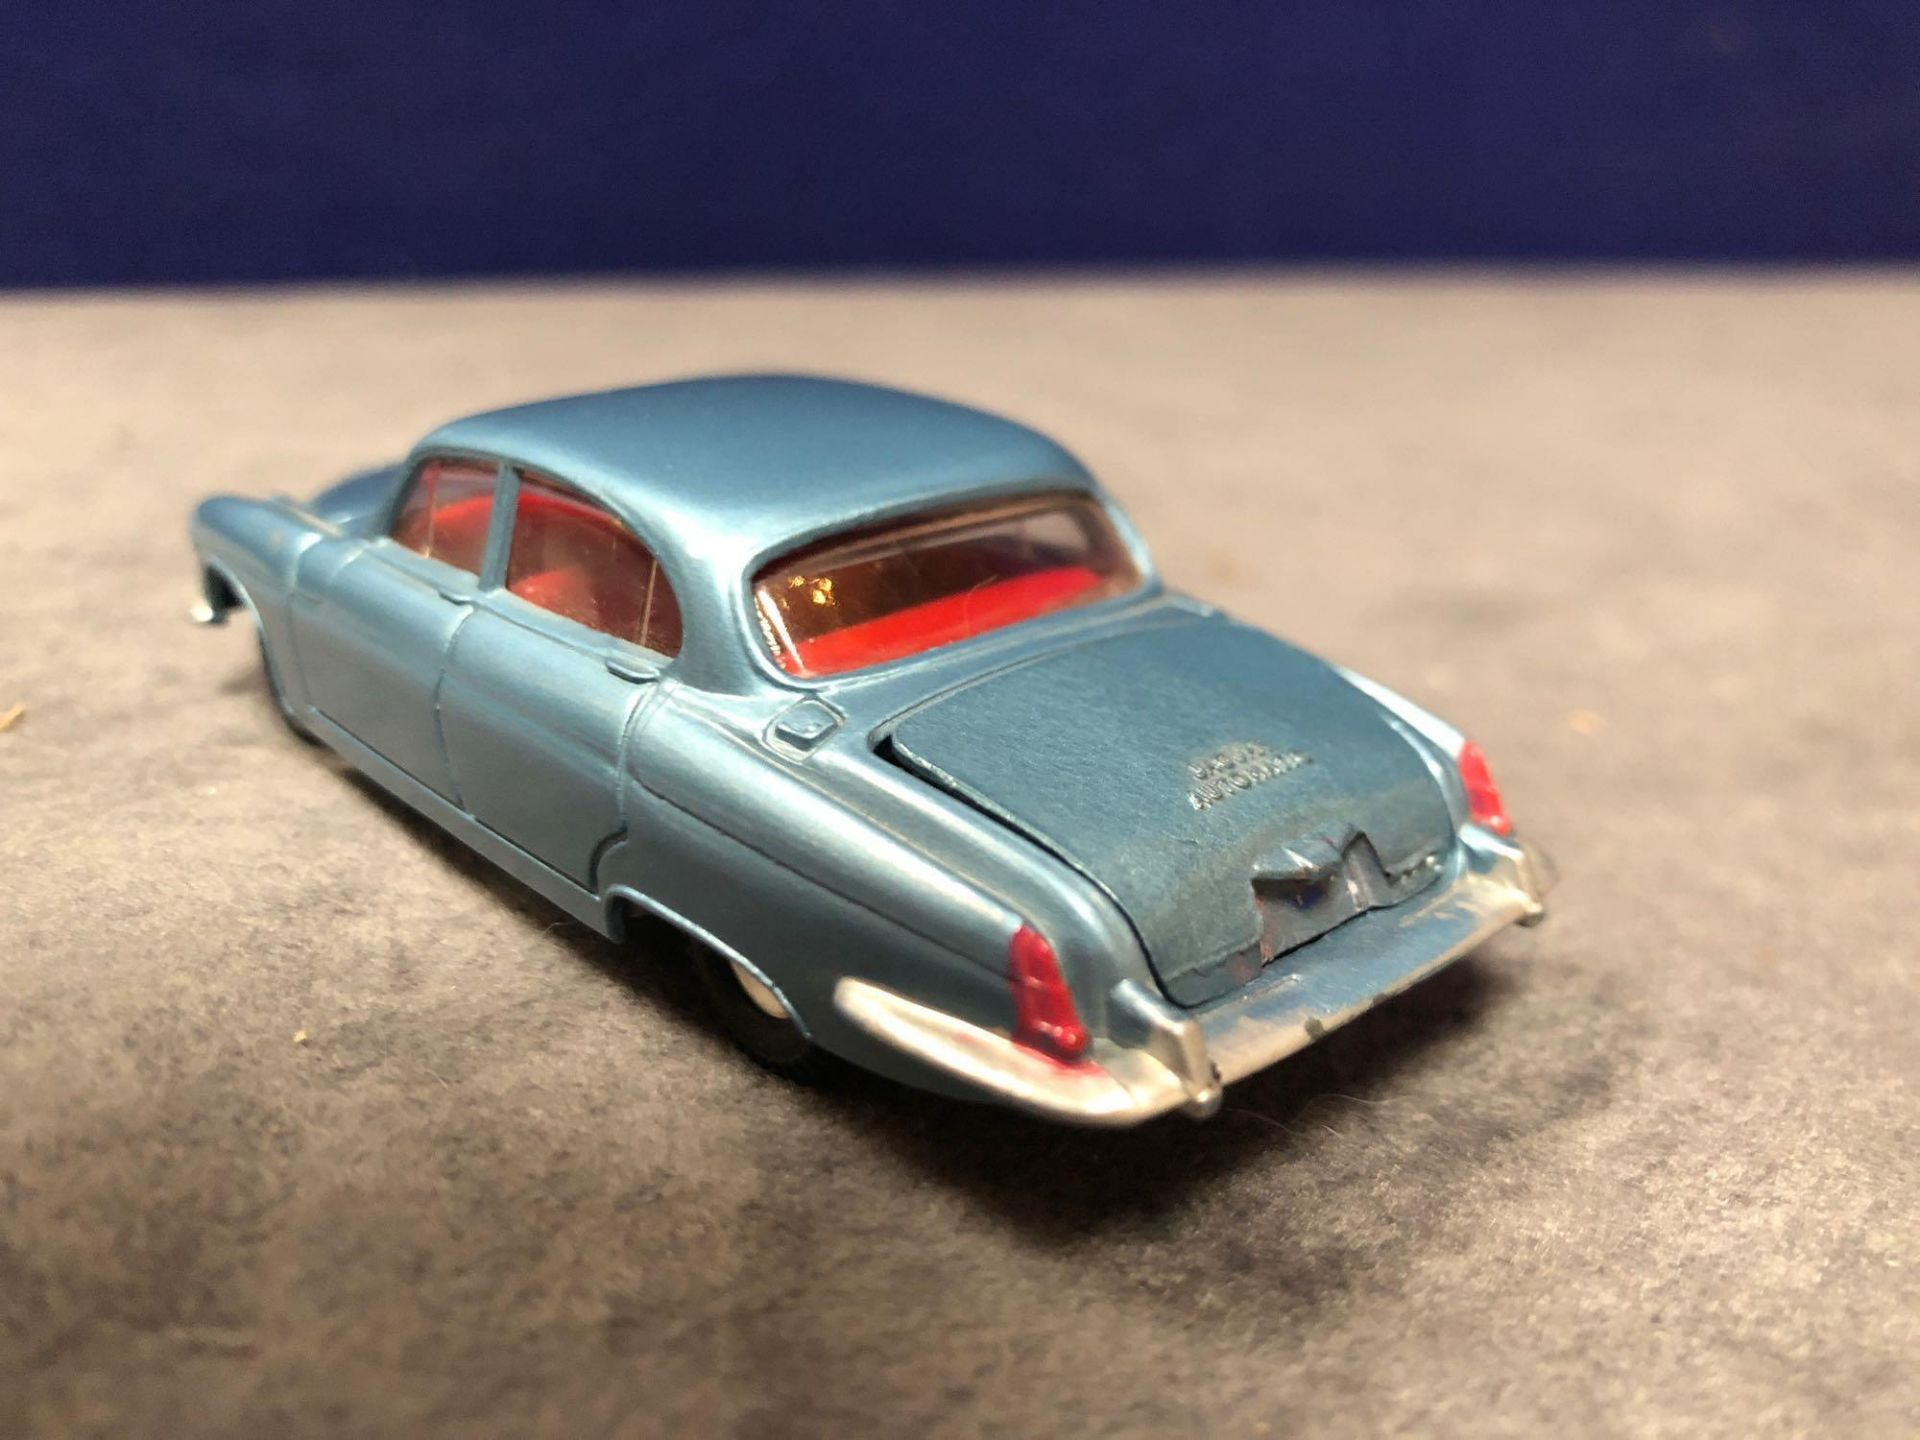 Dinky #142 Jaguar Mark X In Blue With Red Interior 1962-1968 Unboxed Mint lovely model - Image 3 of 4